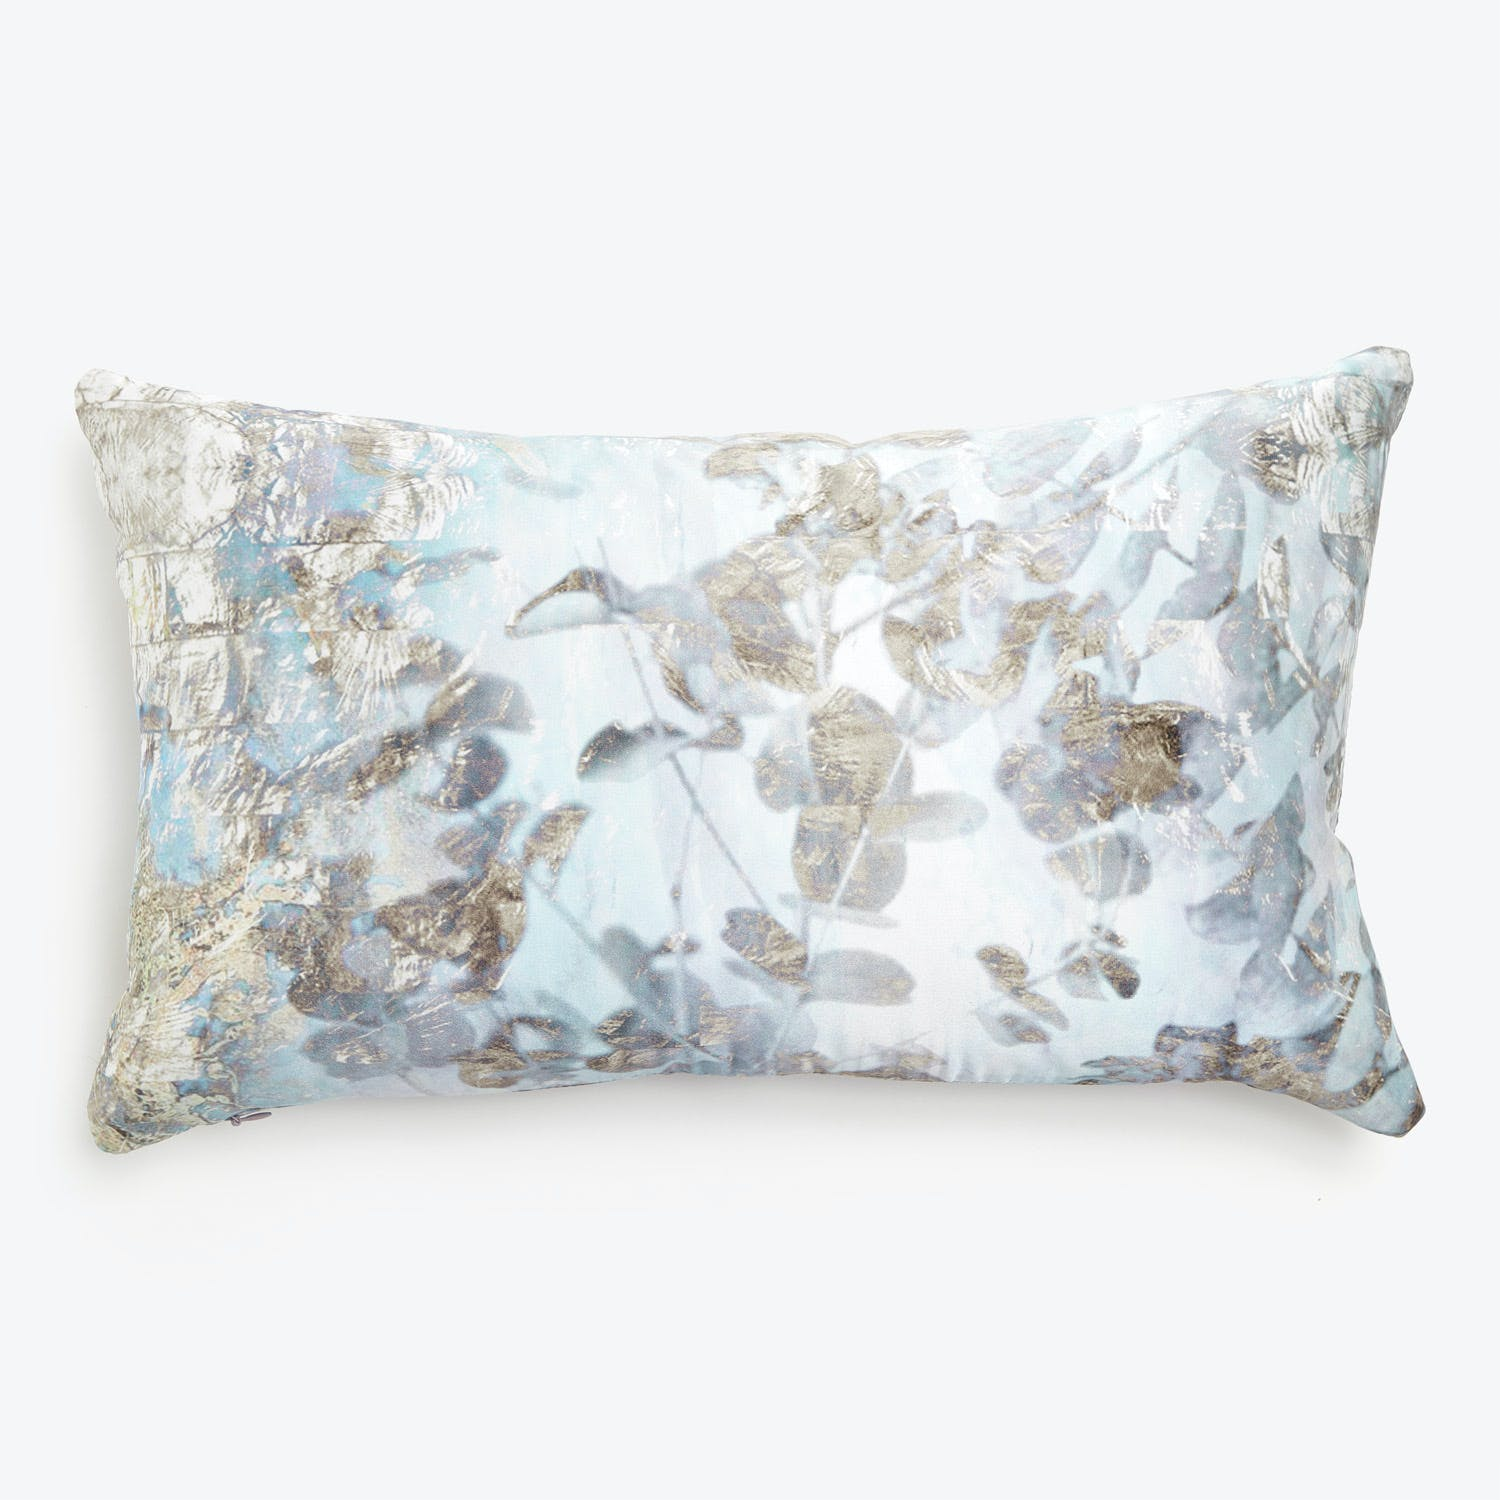 Elli Popp Forever And A Day Pillow Dusk